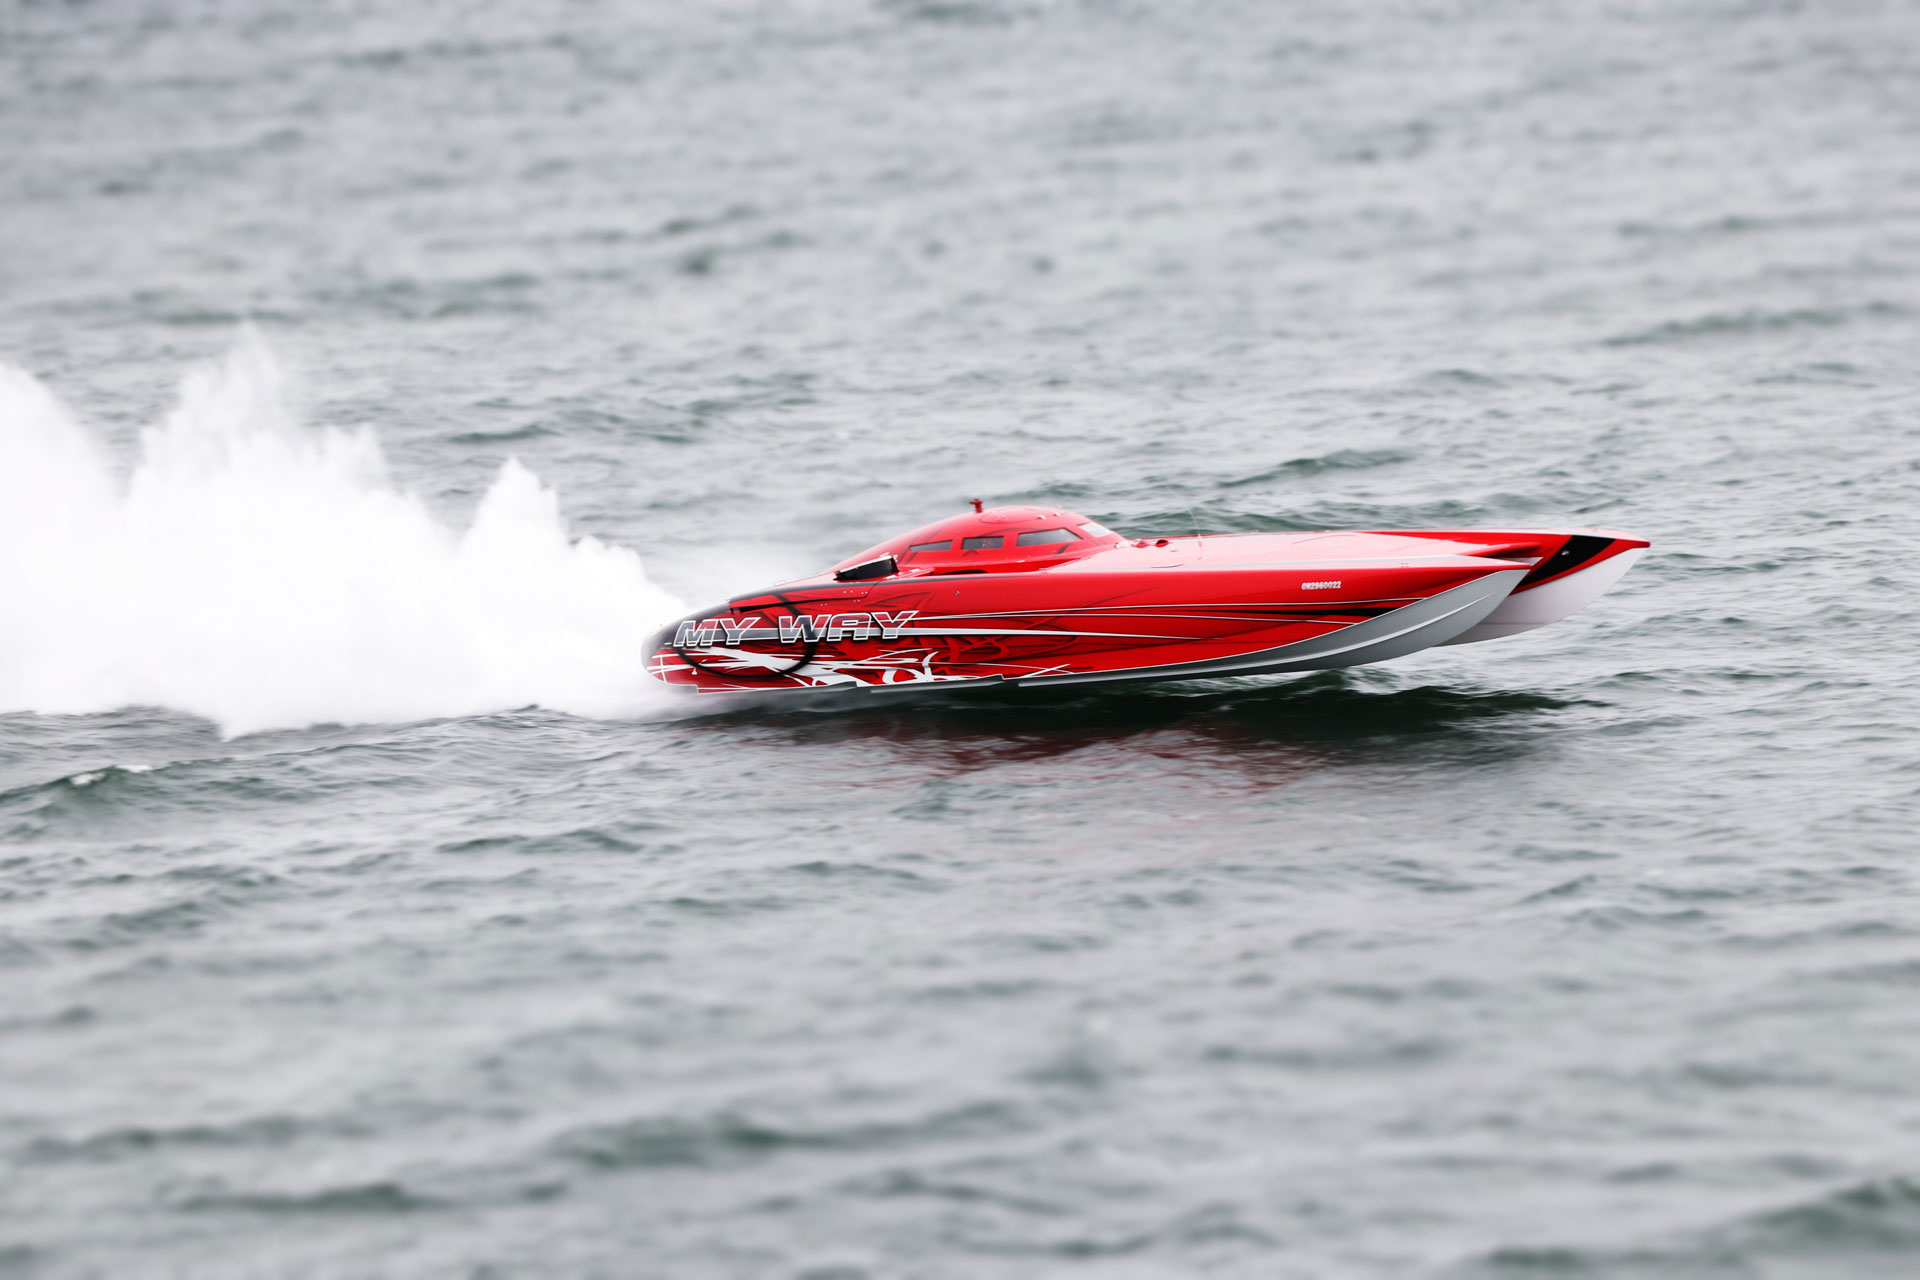 197 MPH in the 1000 Islands and More to Go  - Poker Runs America